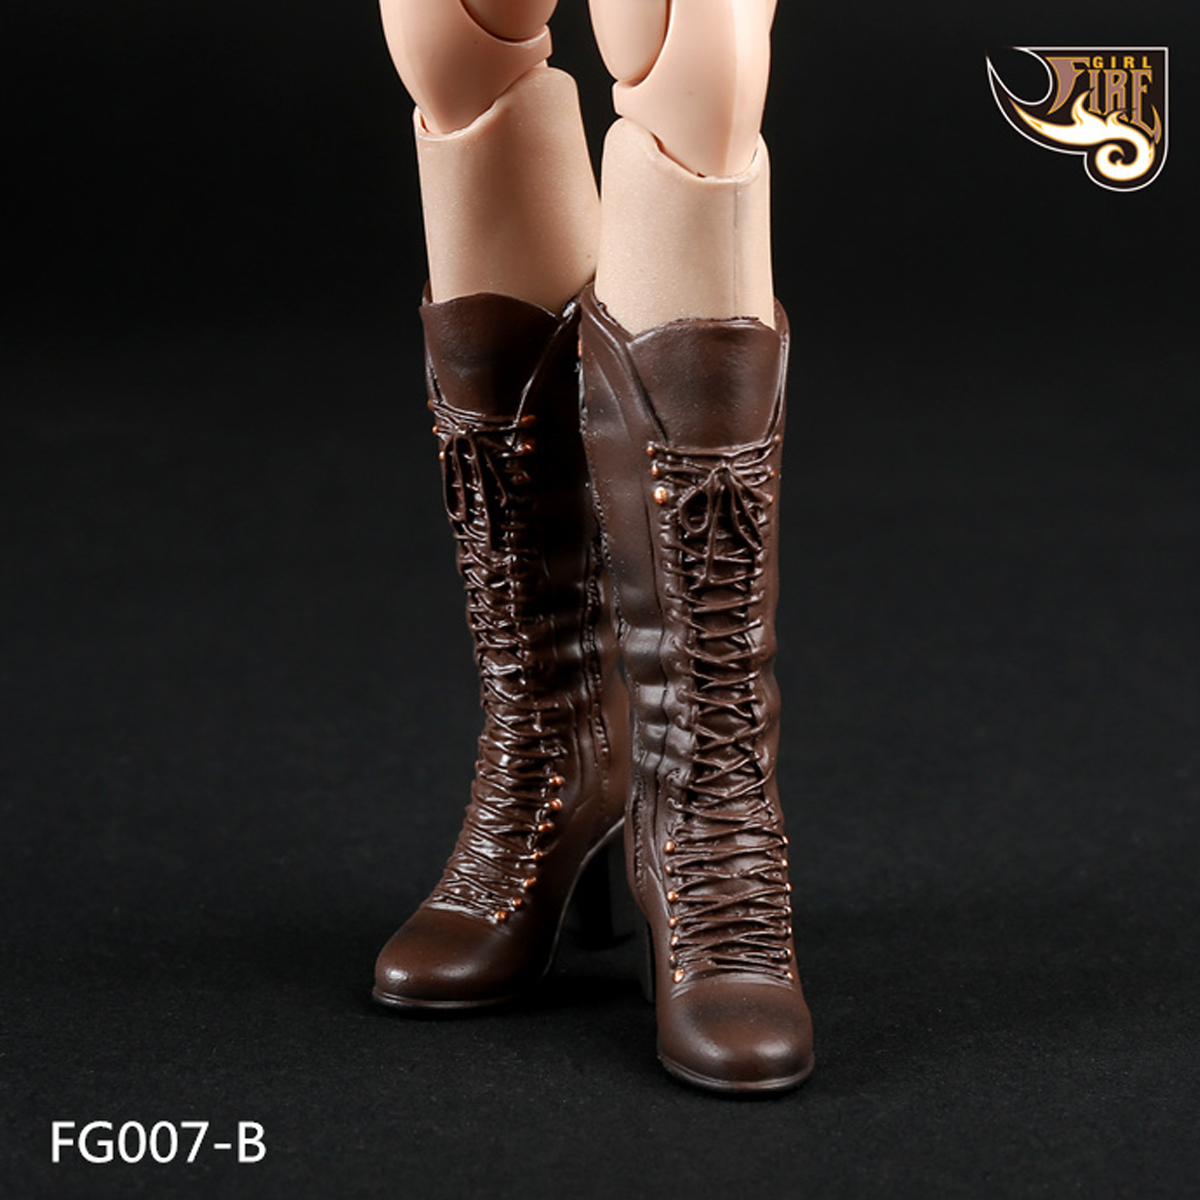 1//6 Scale Fire Girl Toys FG022 Combat Boots For Hot Toys 12in Action Figure